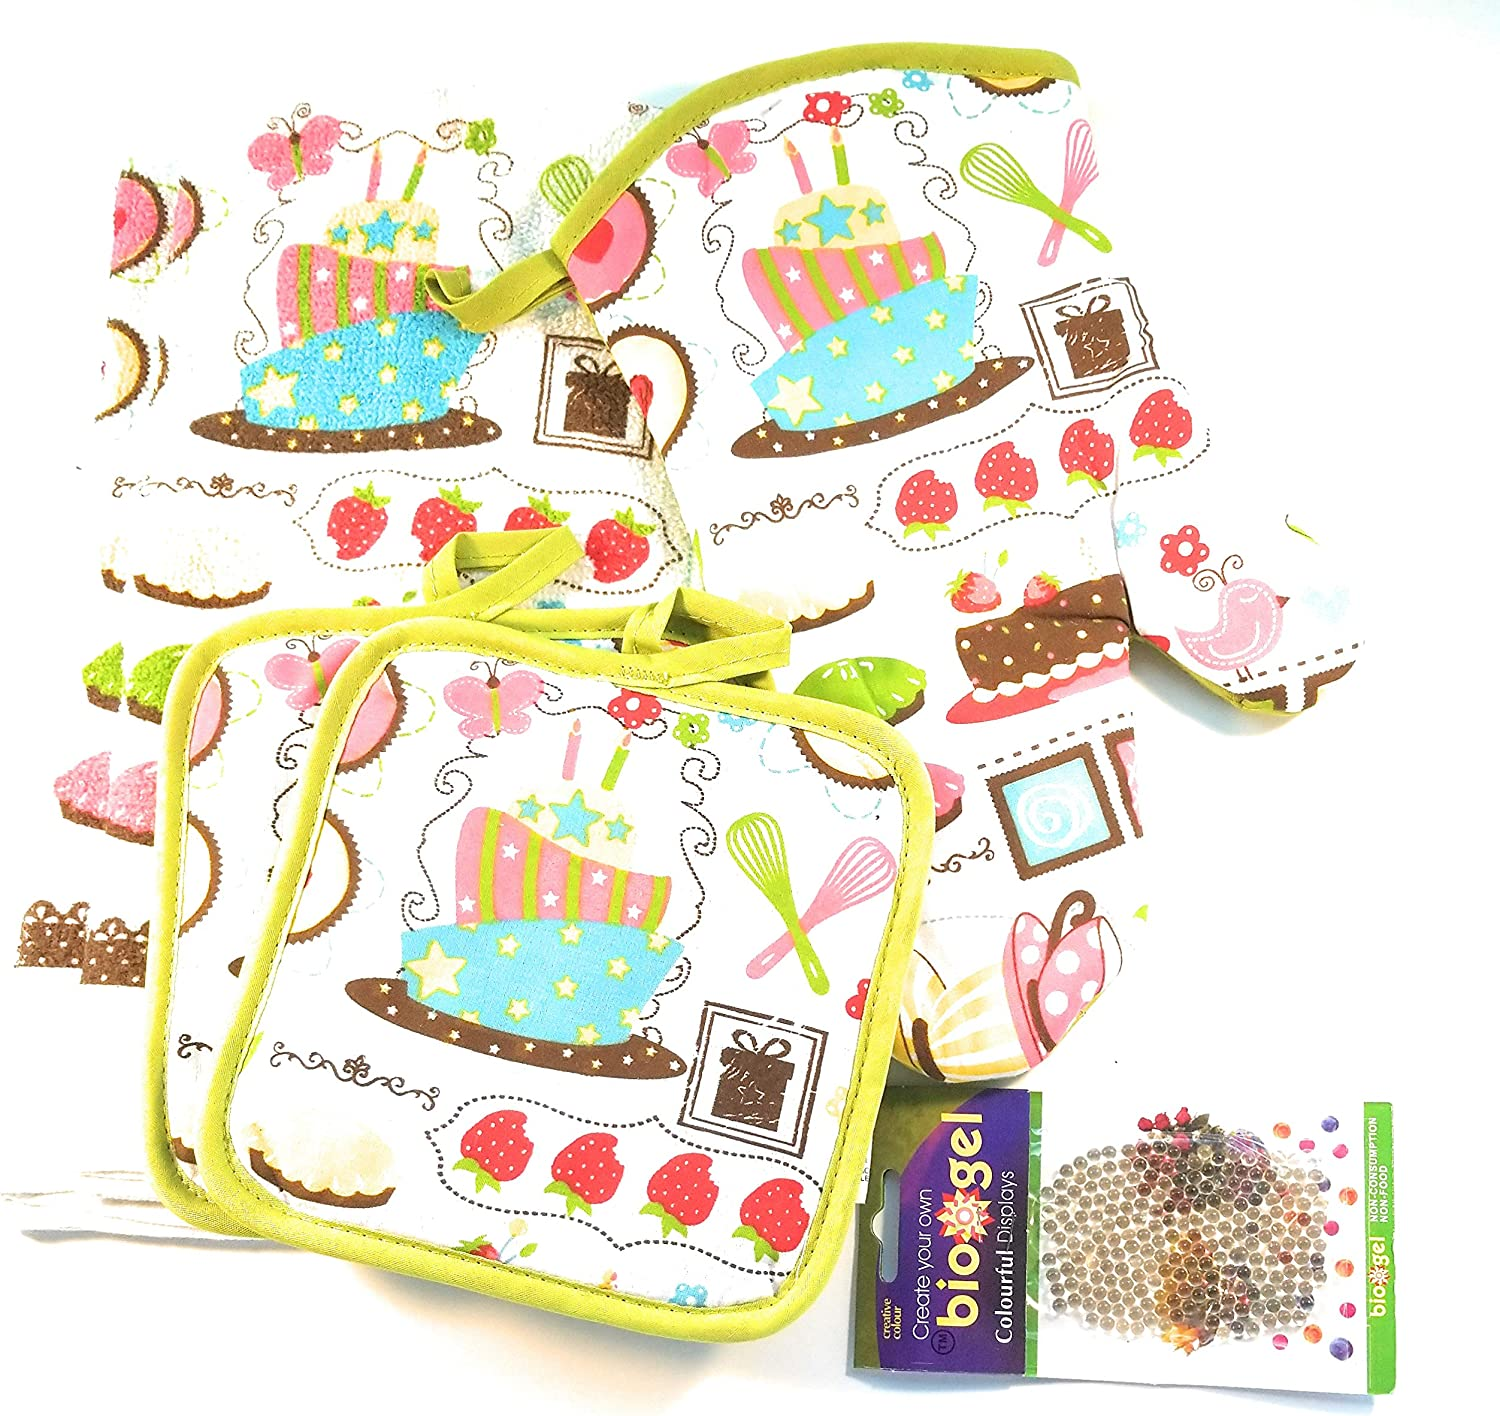 American Mills Baking Themed Kitchen Towel Set (Includes: 1 Oven Mitt, 2 Pot Holders and 2 Dish Towels).